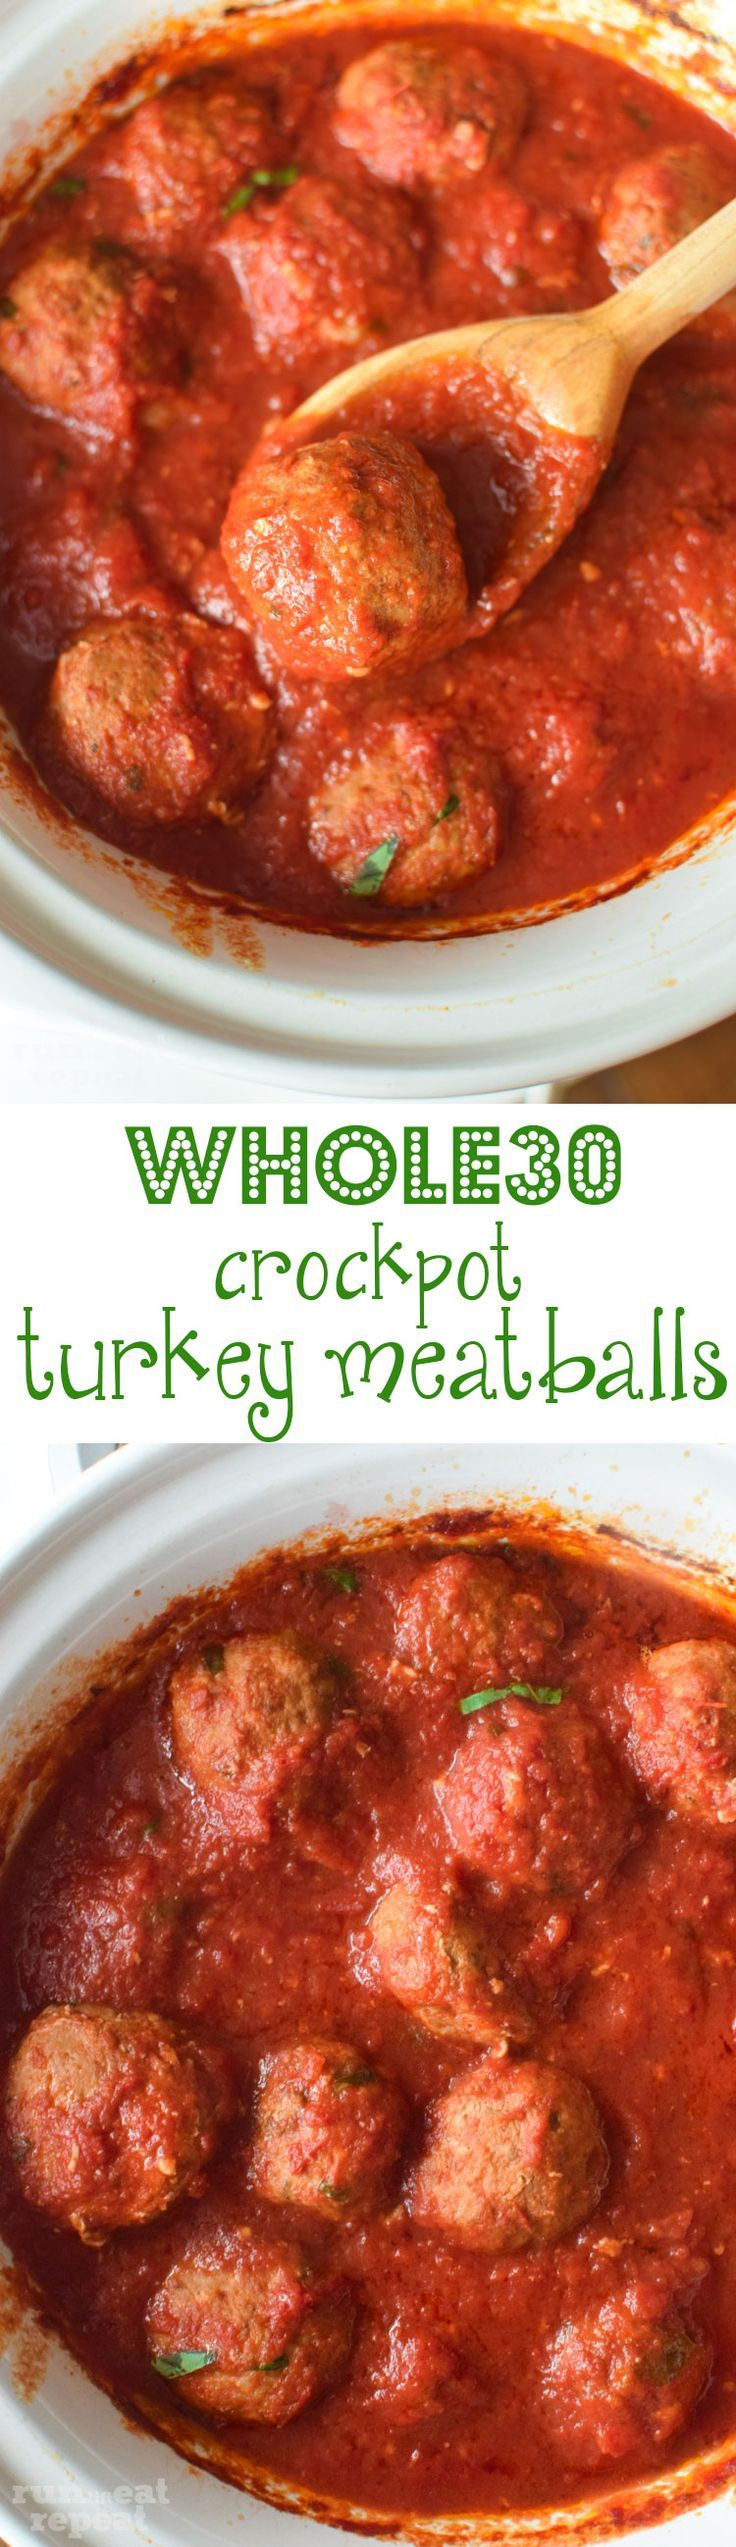 This is my favorite recipe for crockpot turkey meatballs— spiced just right, perfectly tender, packed with flavor, and incredibly simple to make!